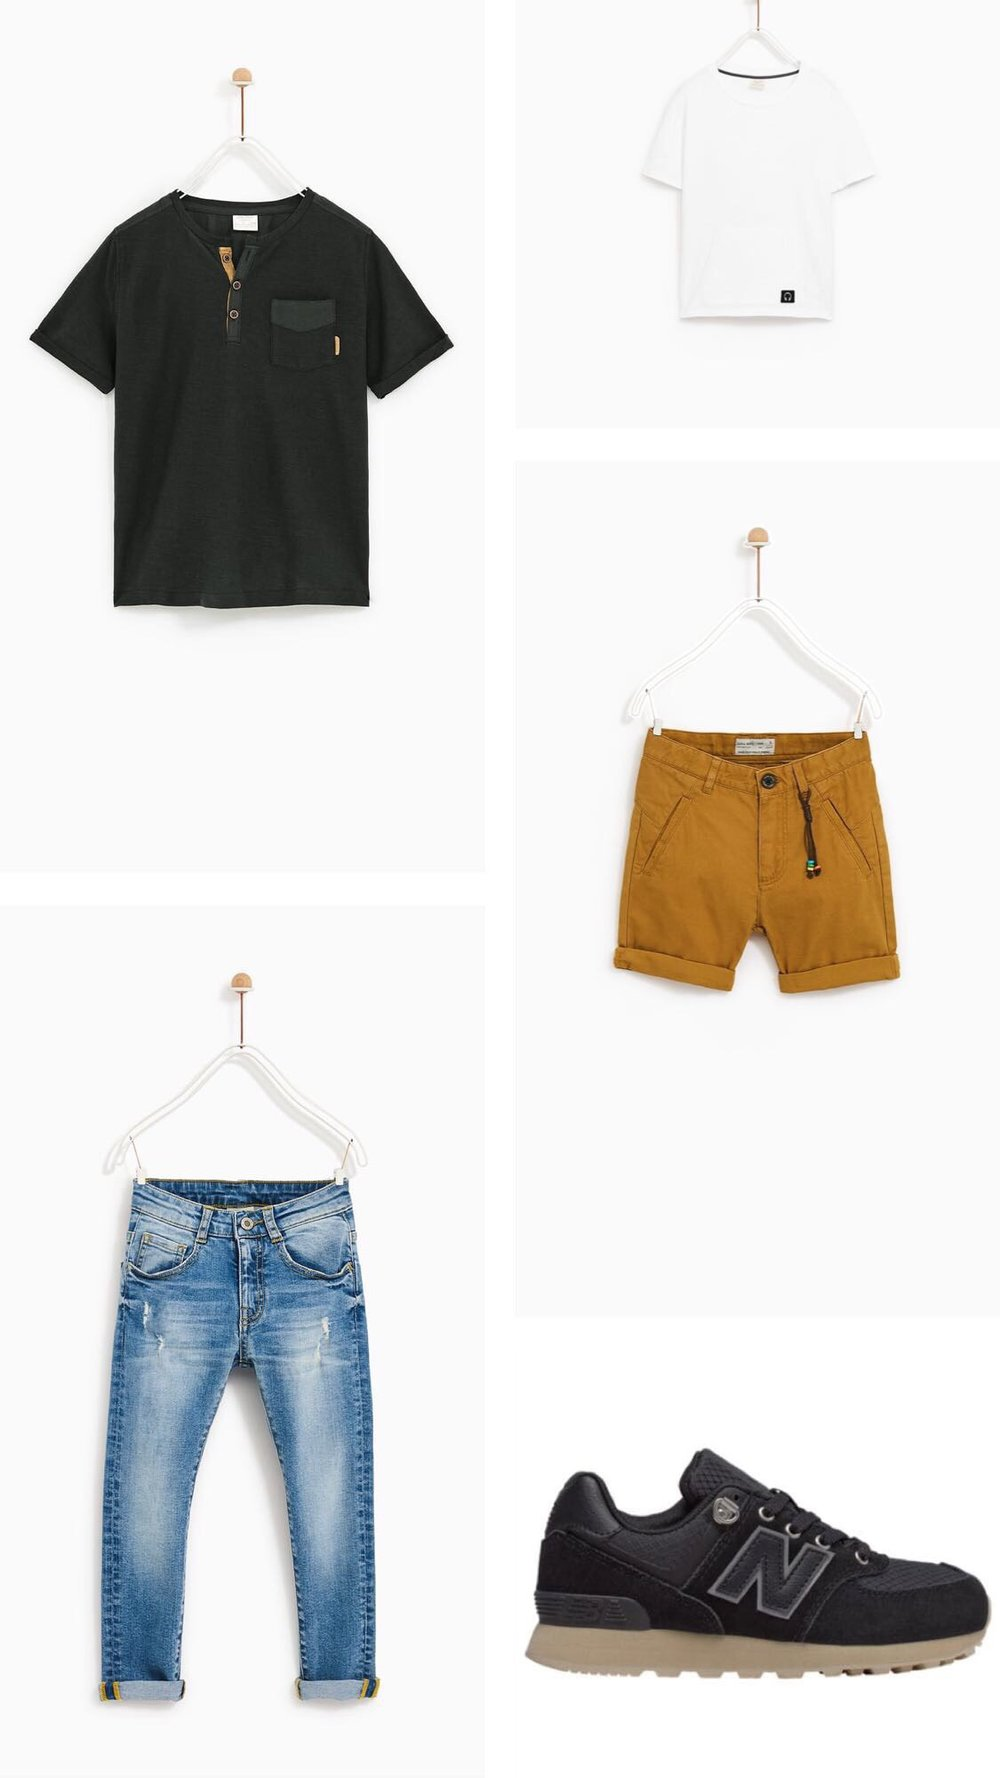 Top Left:  Henley T-shirt   Bottom Left:  Basic Jeans   Top Right:  Double Pocket T-shirt   Mid Right:  Chino Shorts   Bottom Right:  Kid's New Balance 574